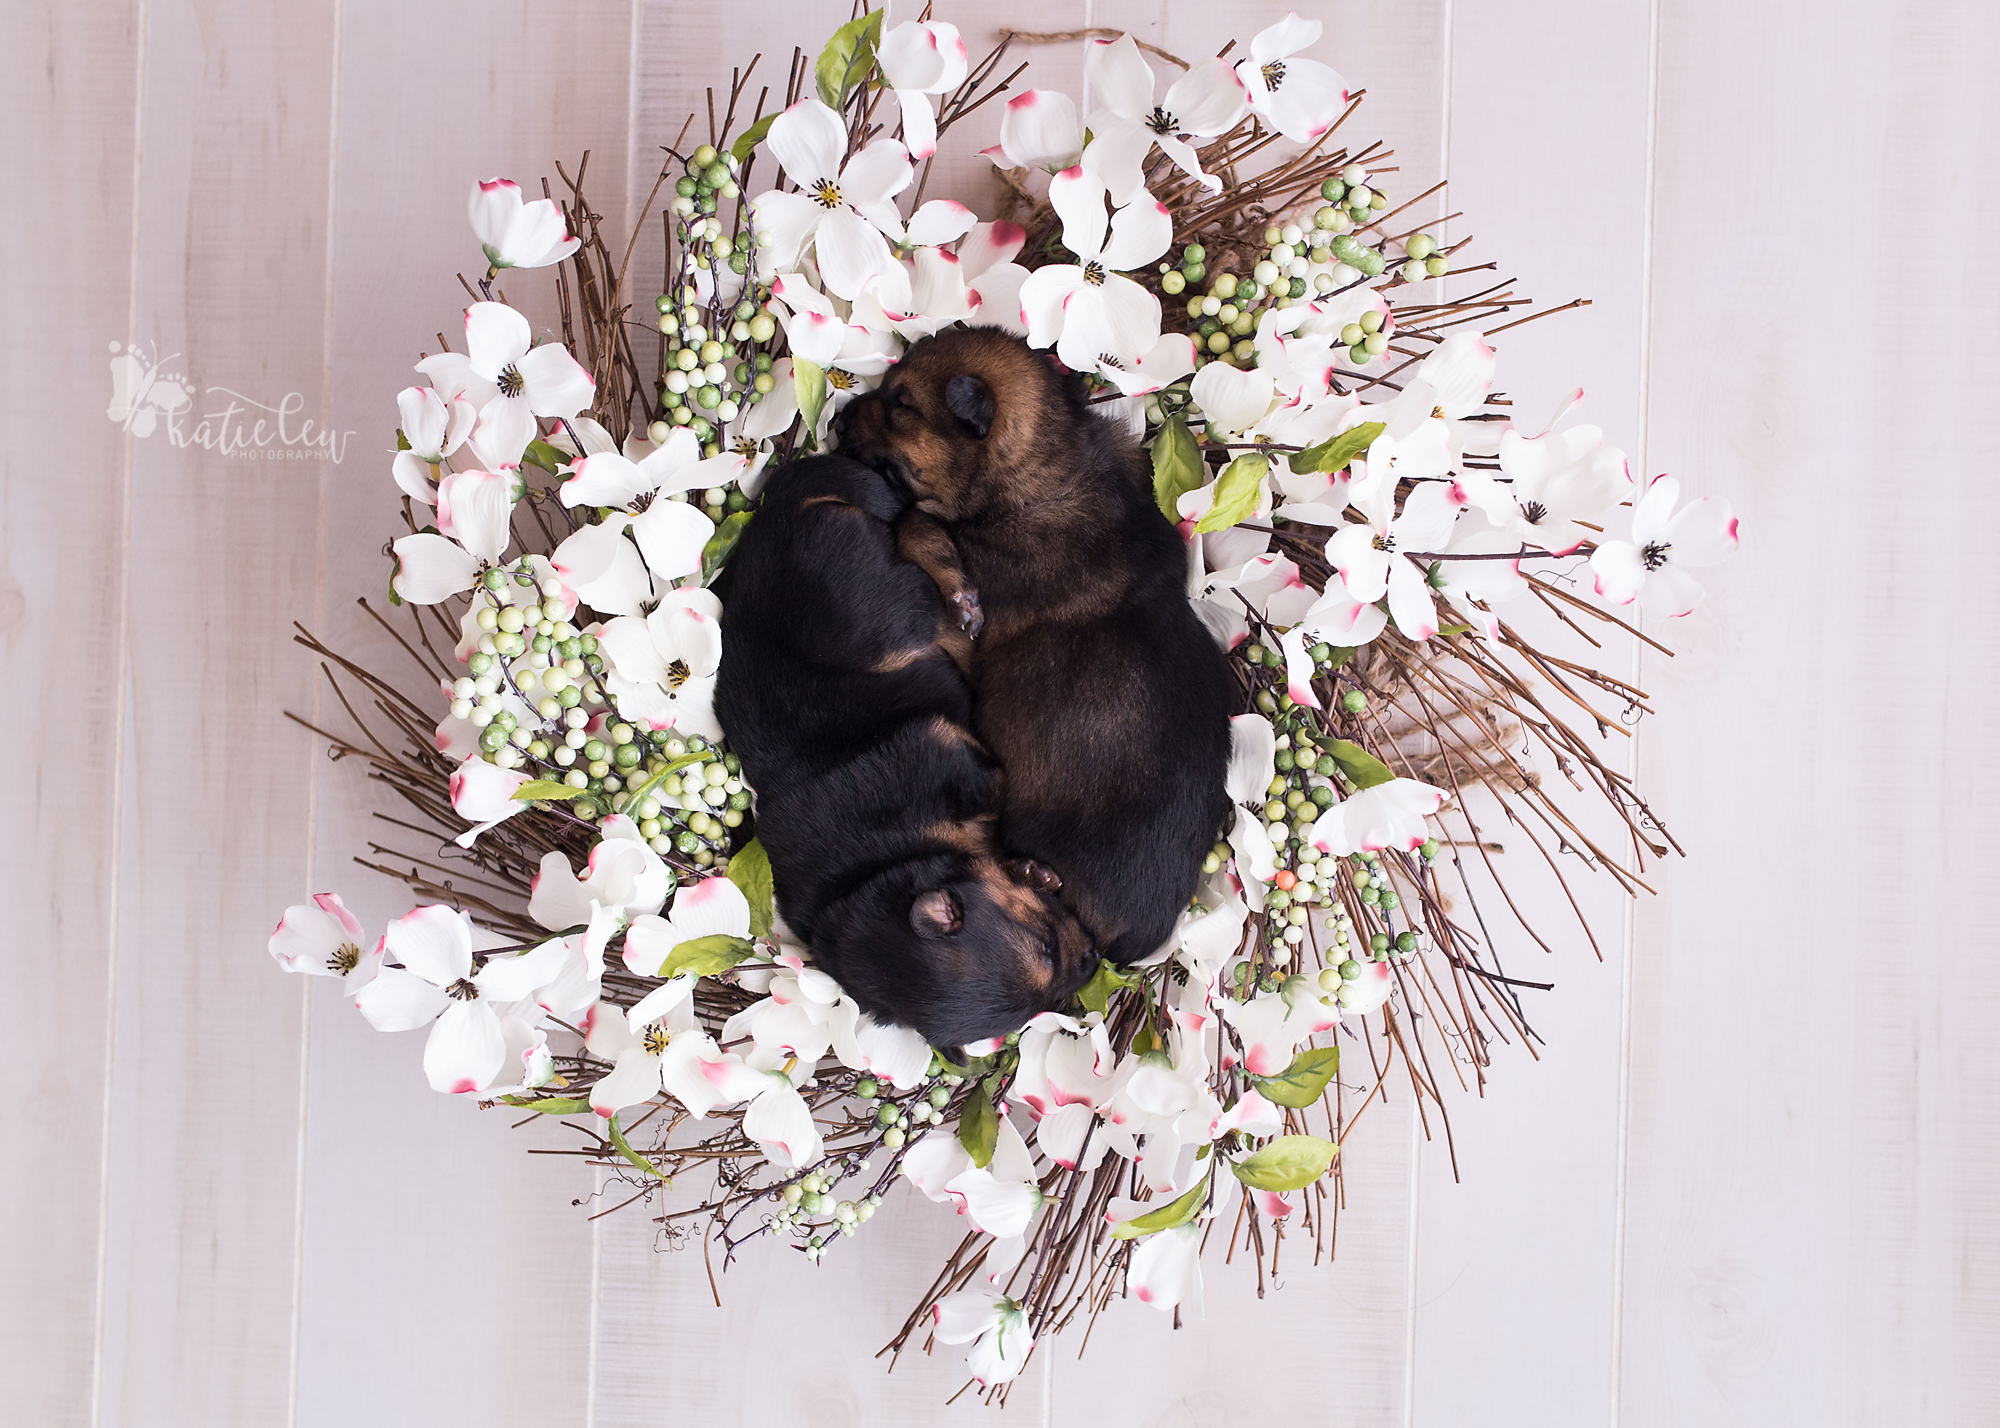 puppies lying in a floral wreath